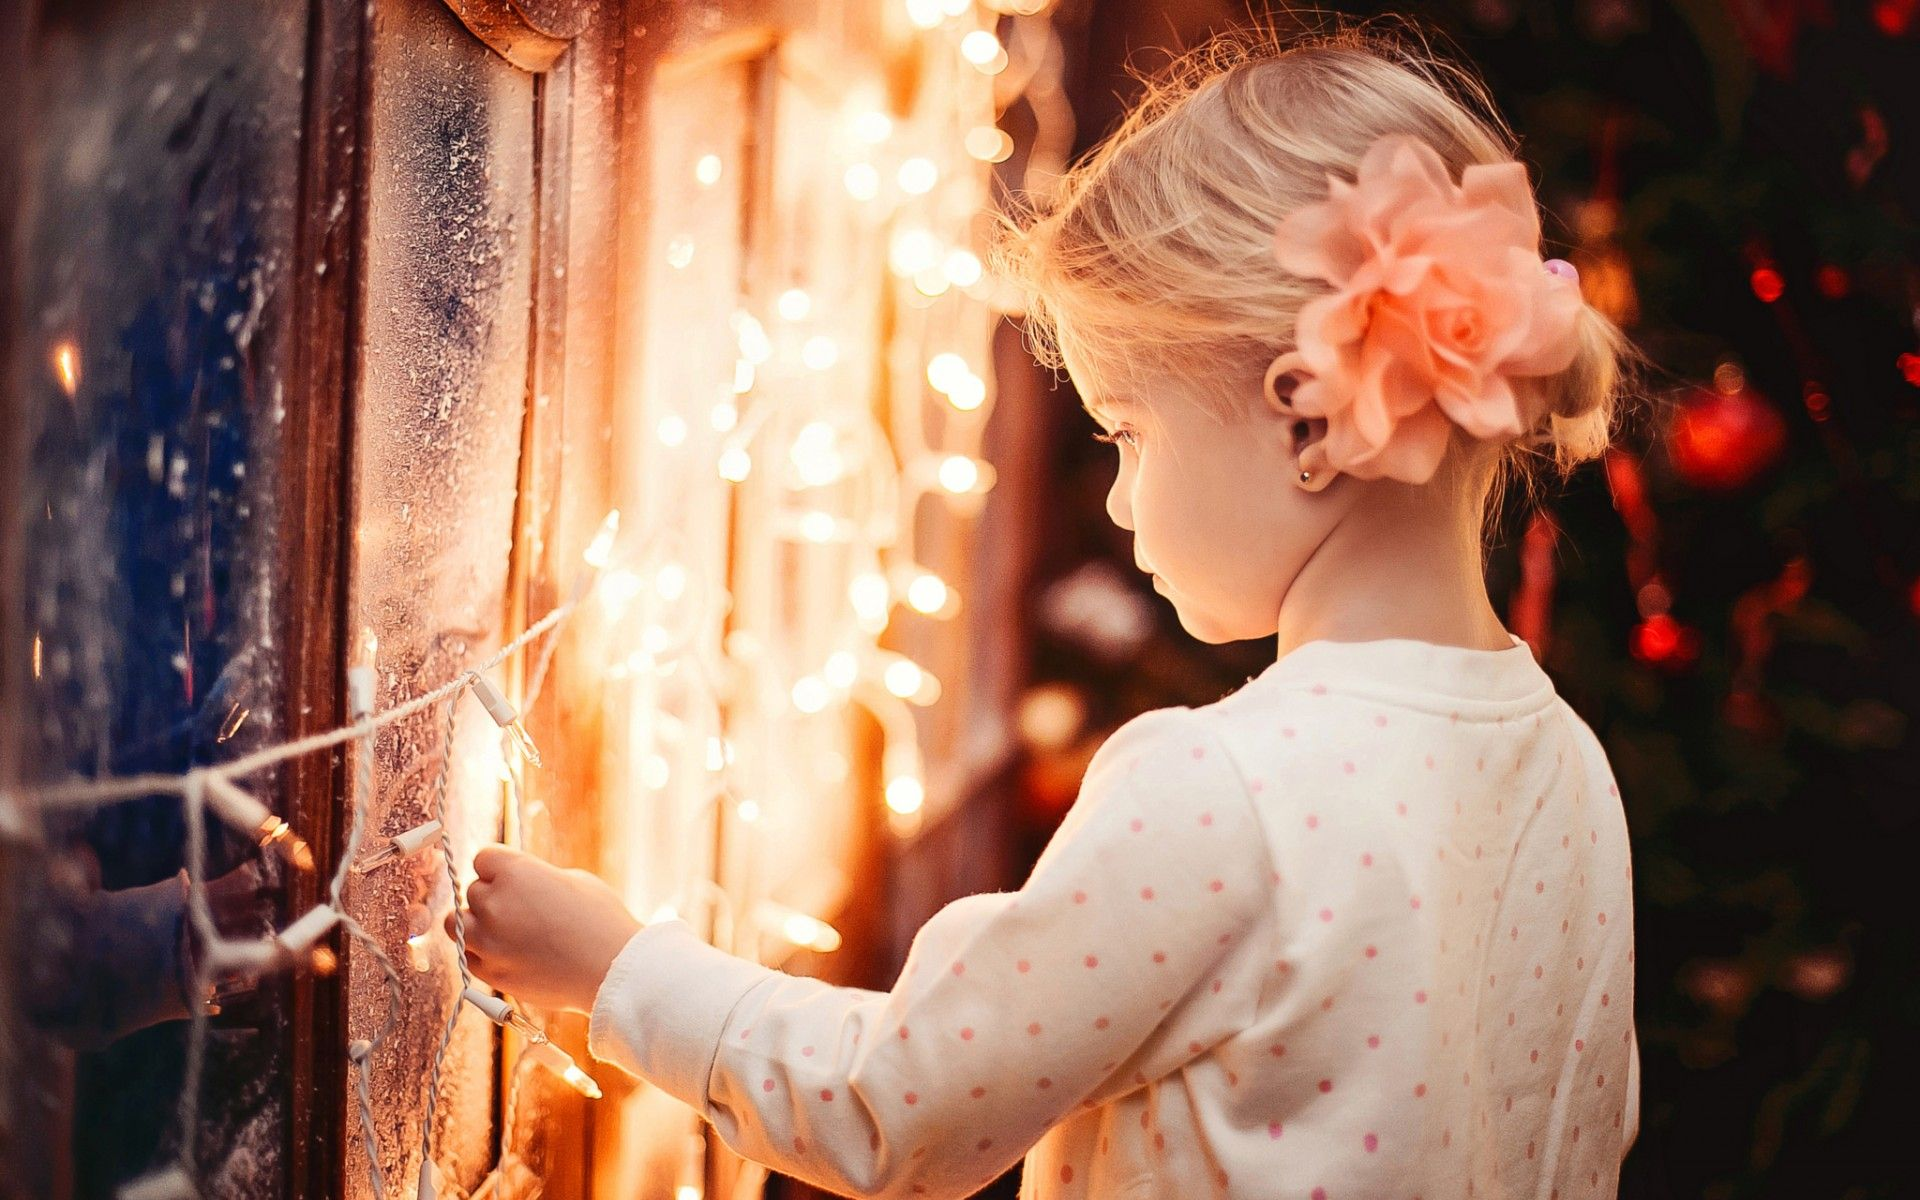 merry xmas a little girl standing beside garland lights, winter window beautiful wallpaper computer desktop, happy new year 2016 hd widescreen high quality